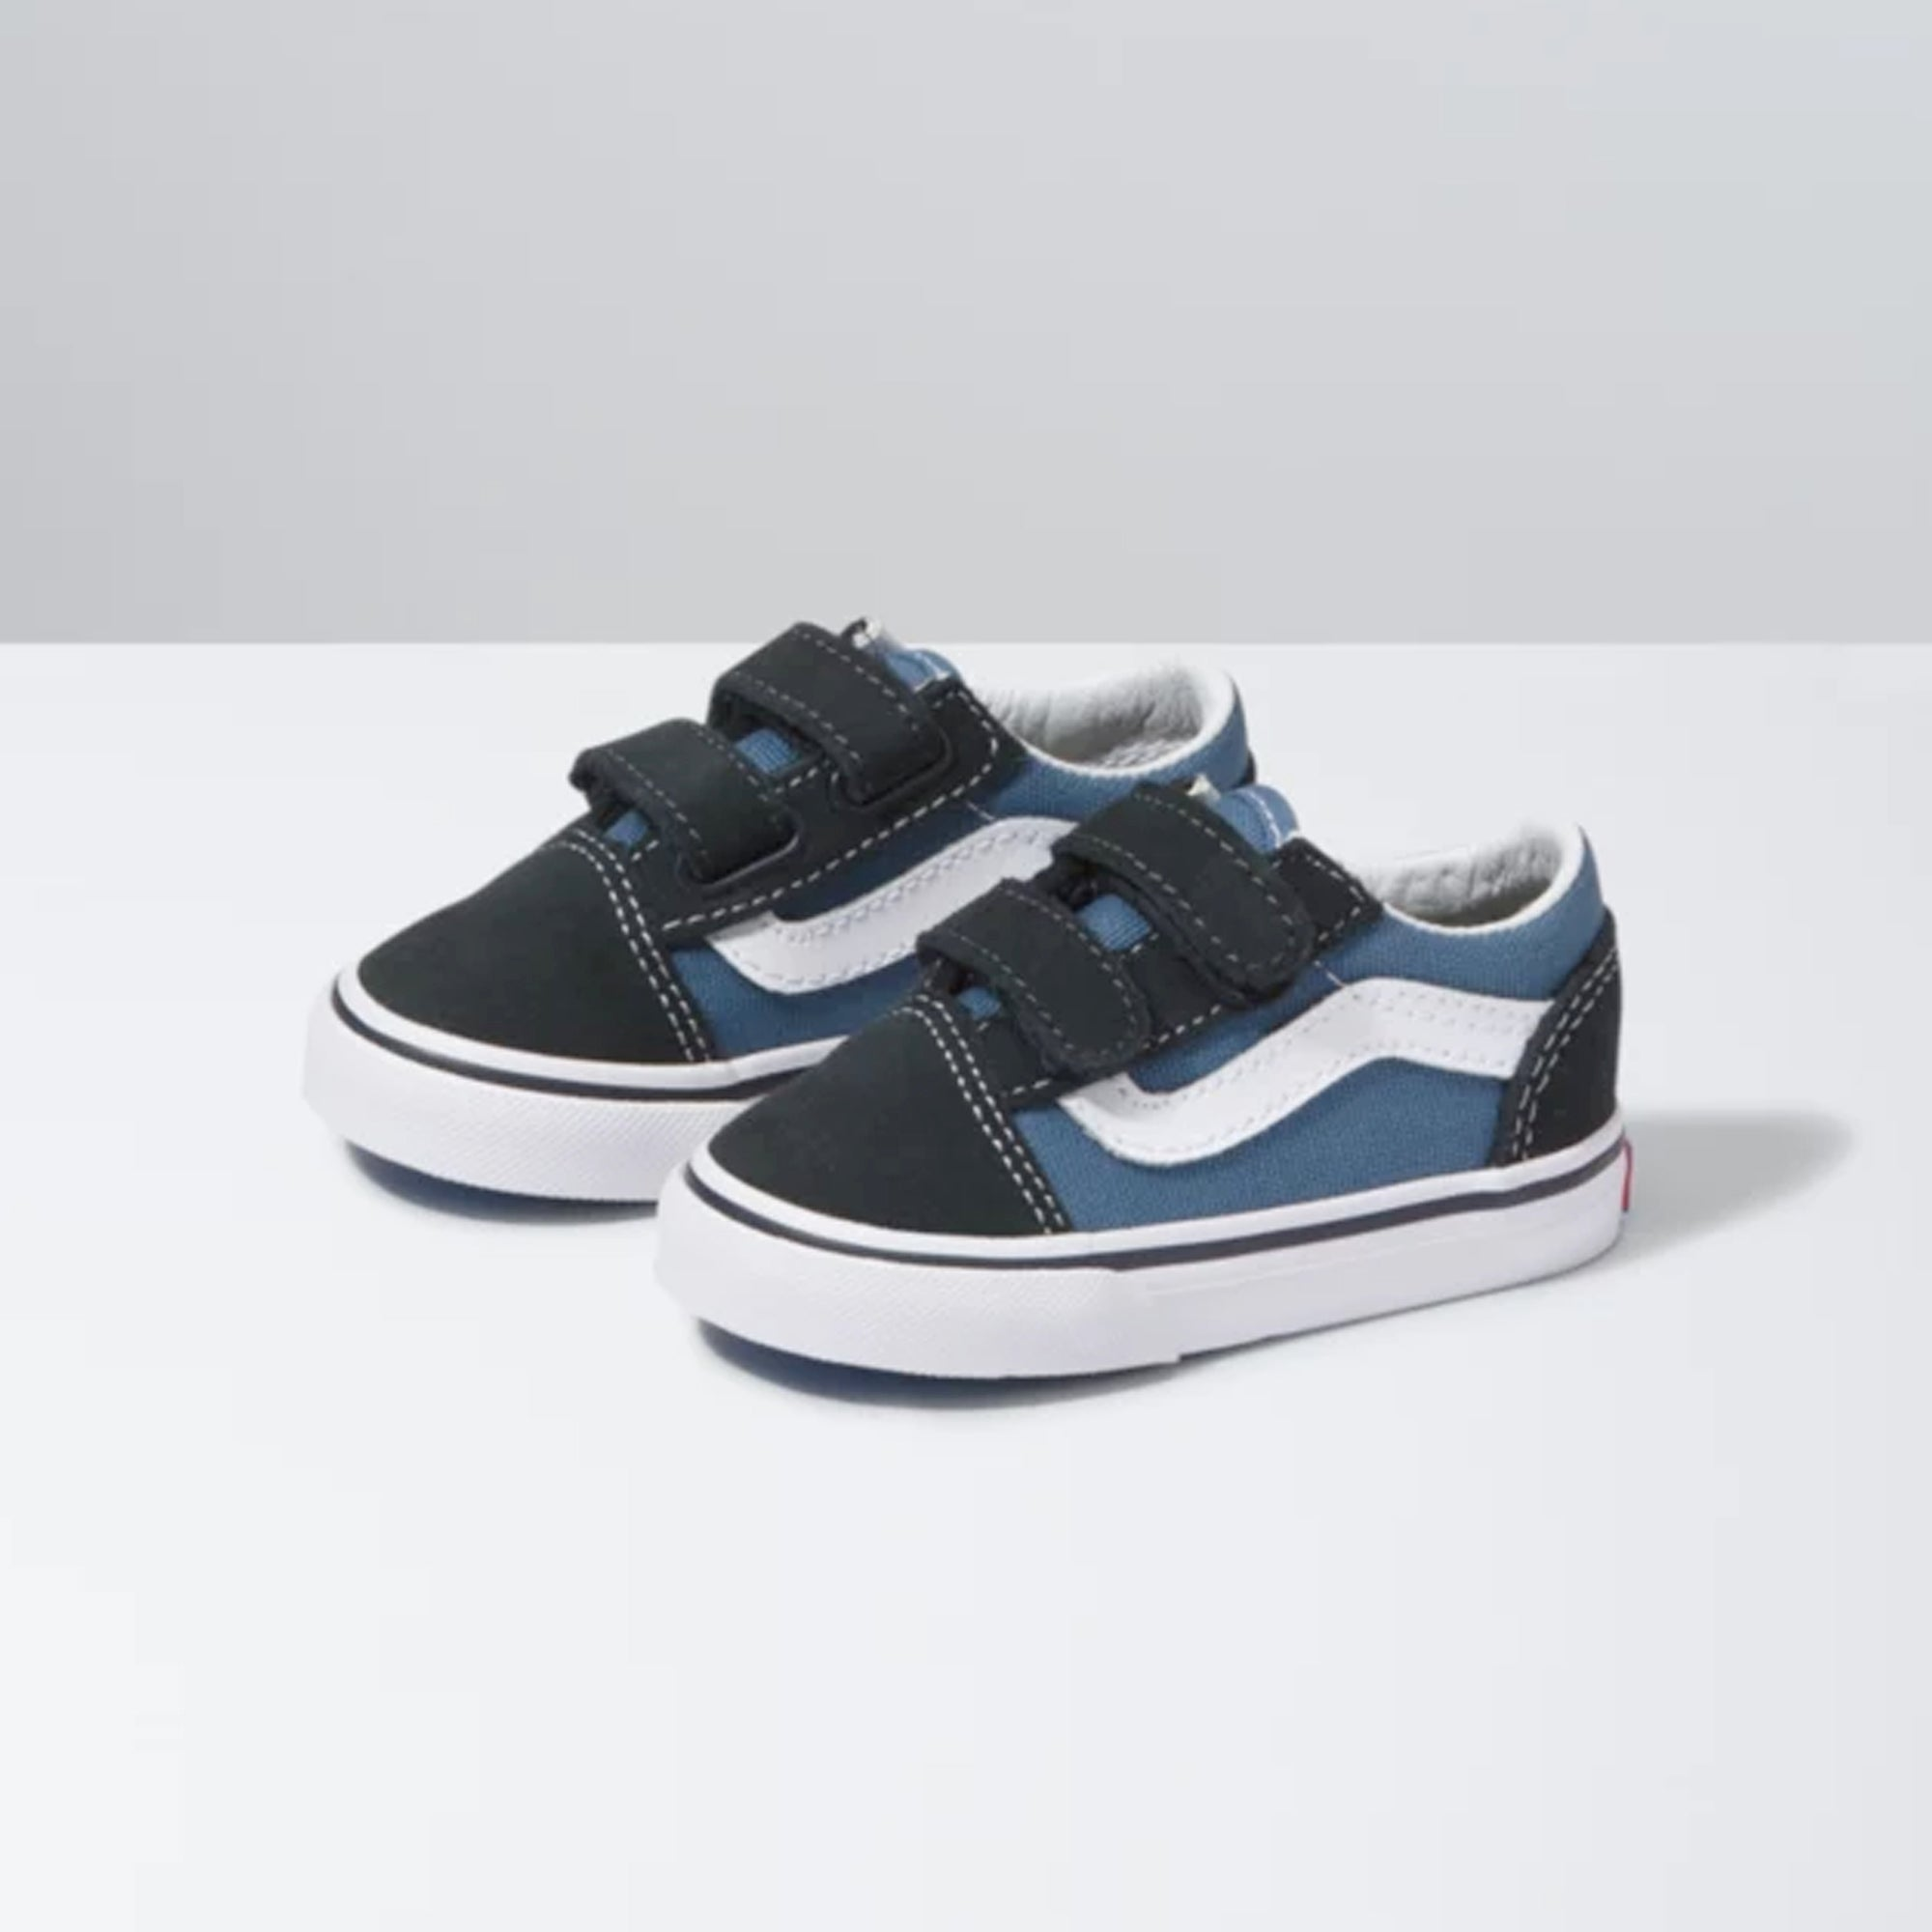 Vans Old Skool V Toddler's Shoes